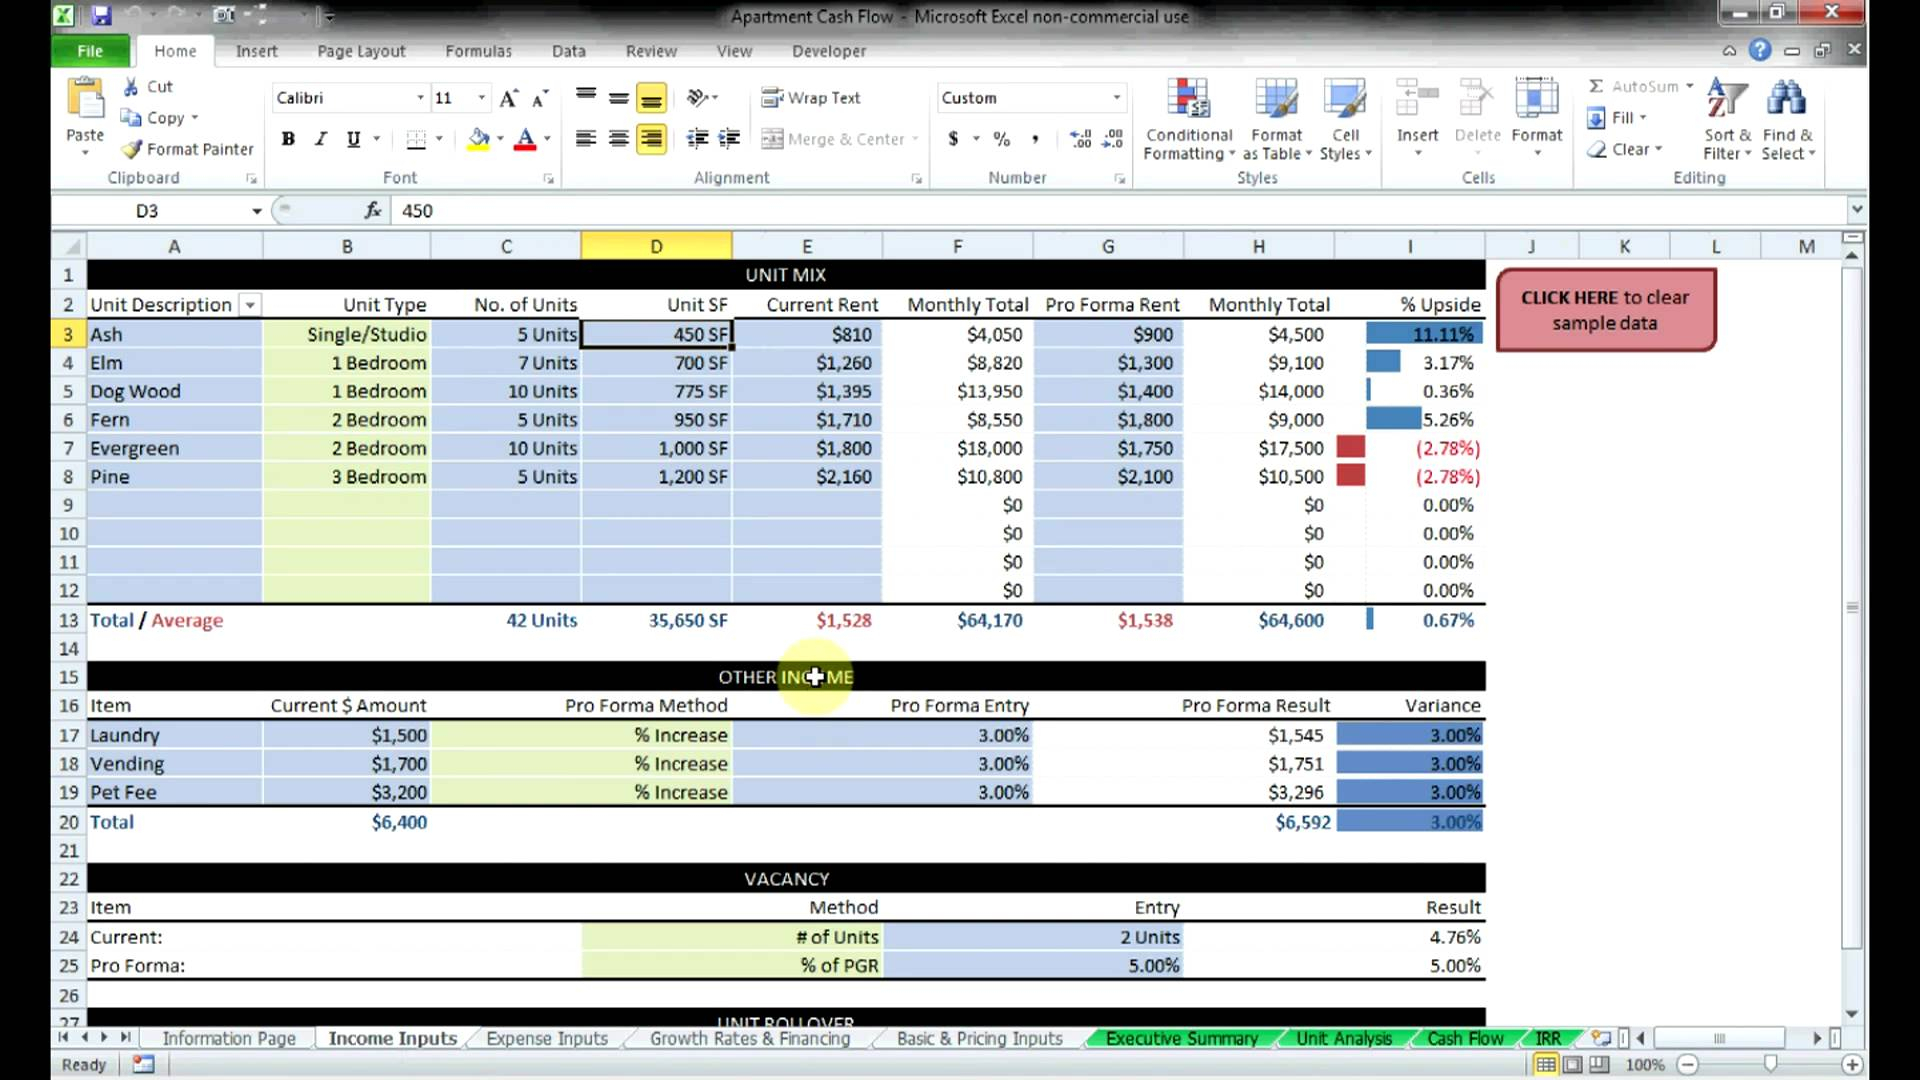 Commercial Real Estate Spreadsheet Within Real Estate Investment Spreadsheet Templates Free  Homebiz4U2Profit